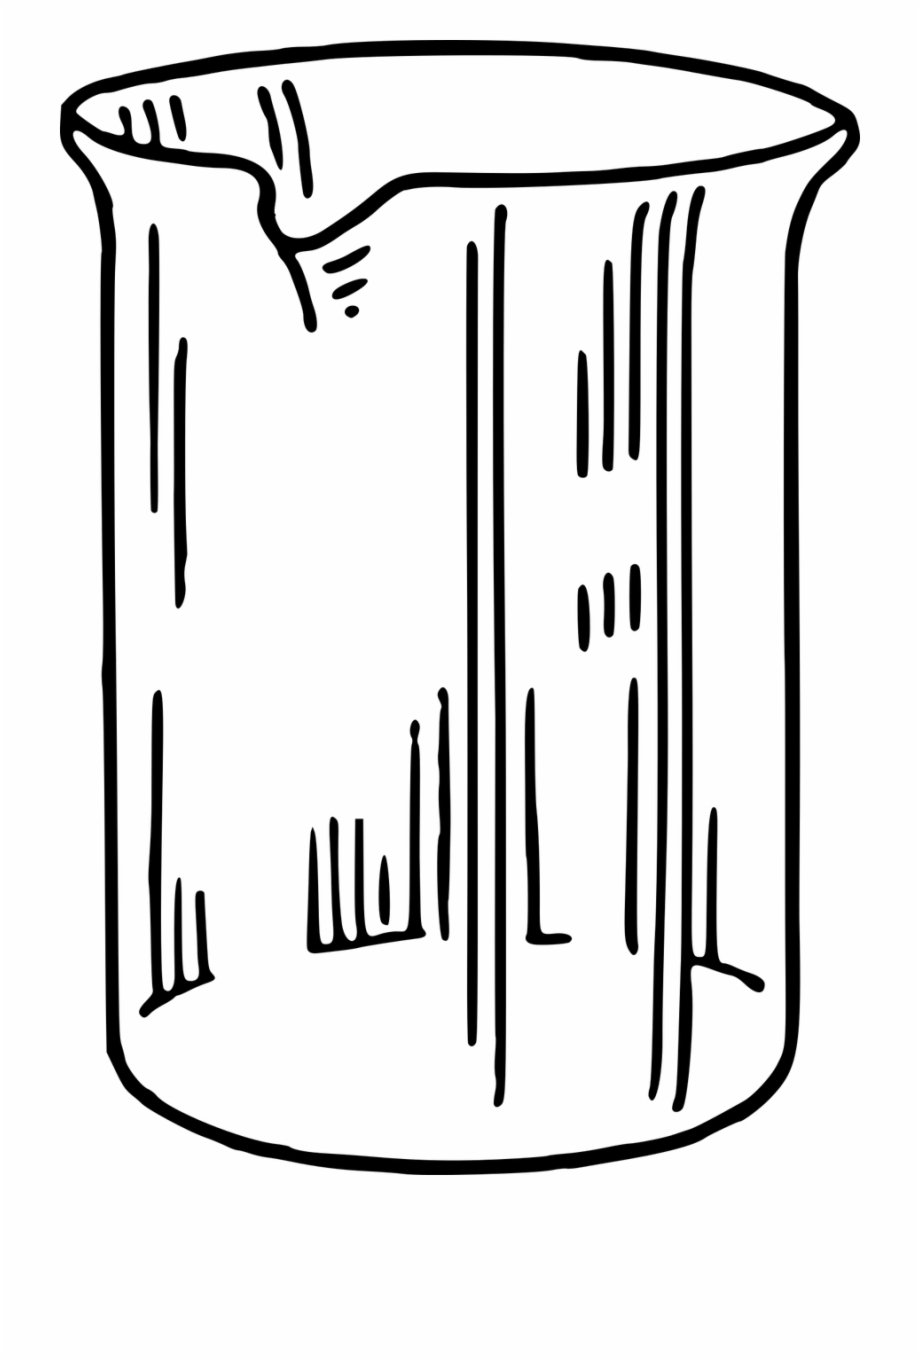 Beaker Chemistry Container Png Image.